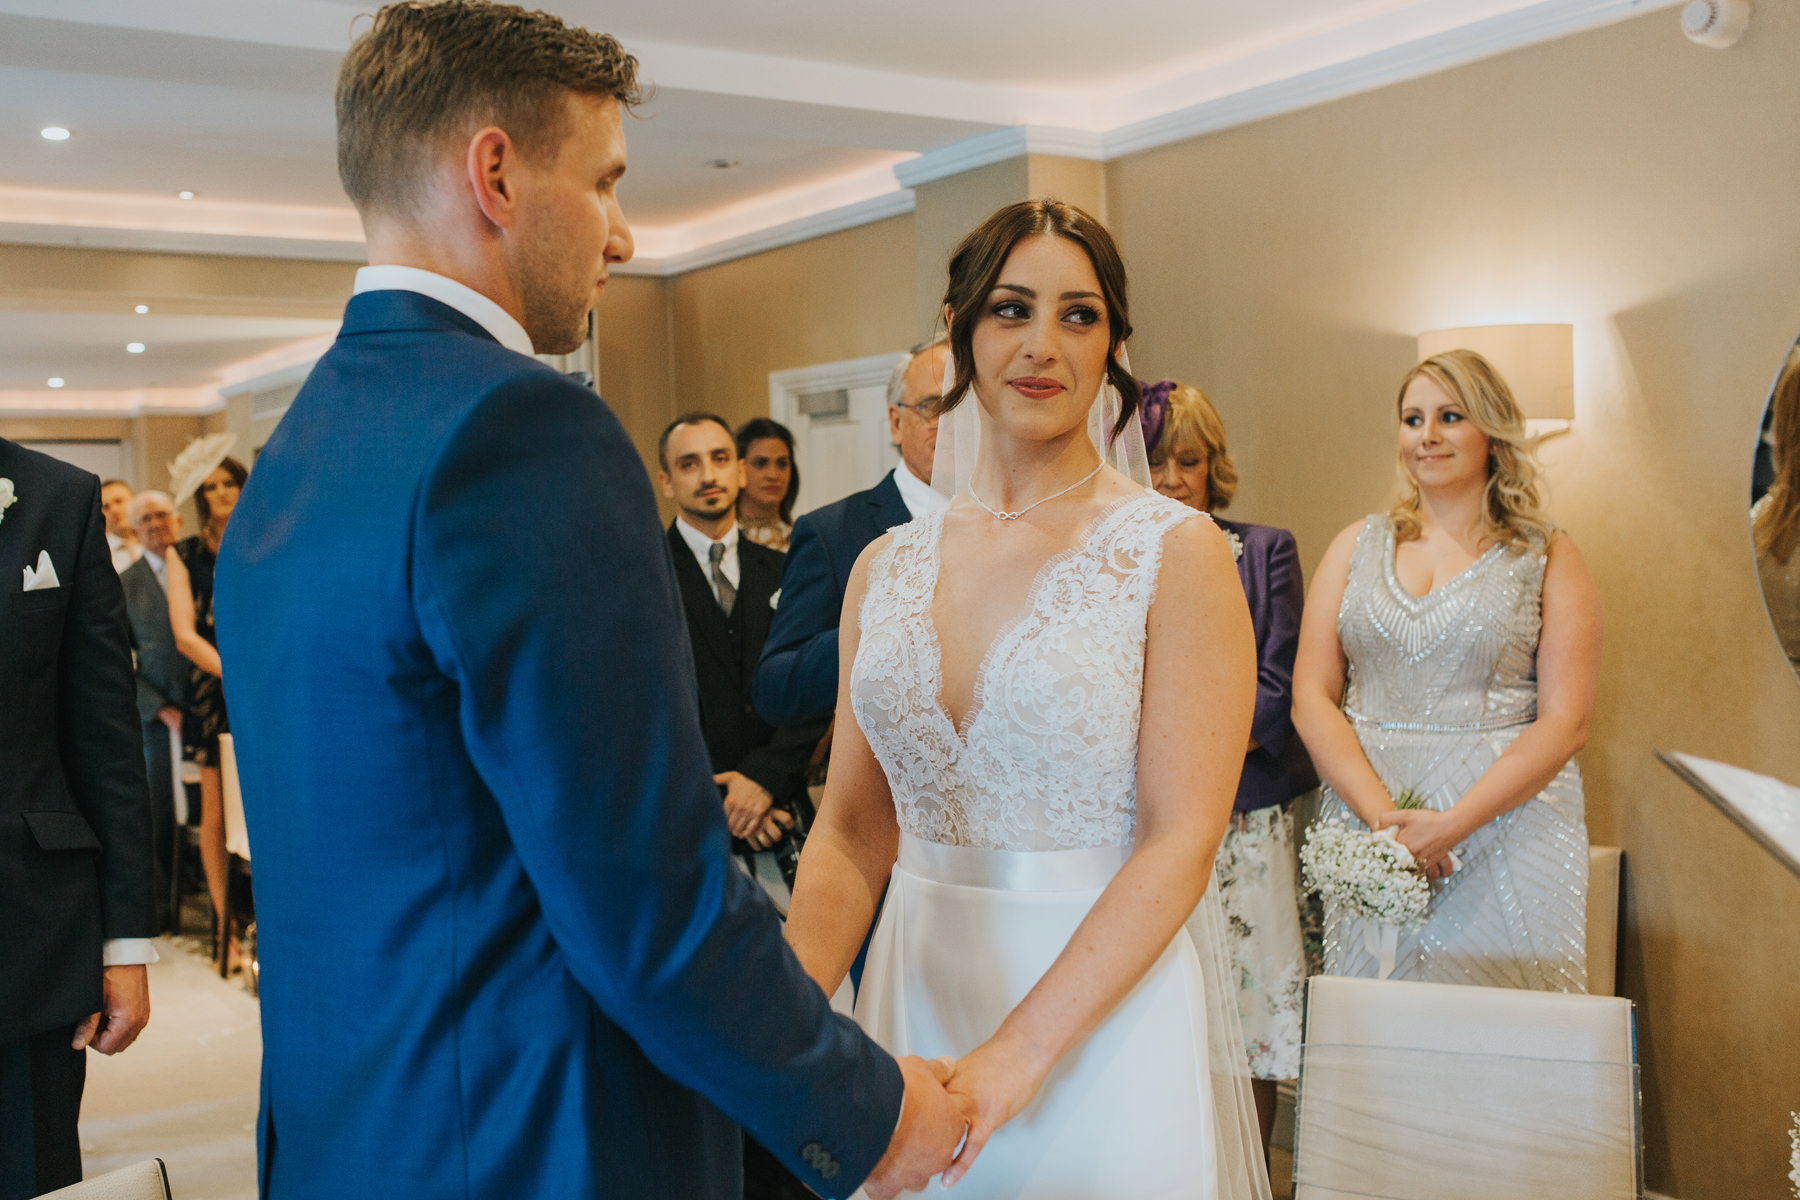 Richmond The Bingham Wedding Photographer London--groom bride ceremony exchanging rings-CRL-159.jpg